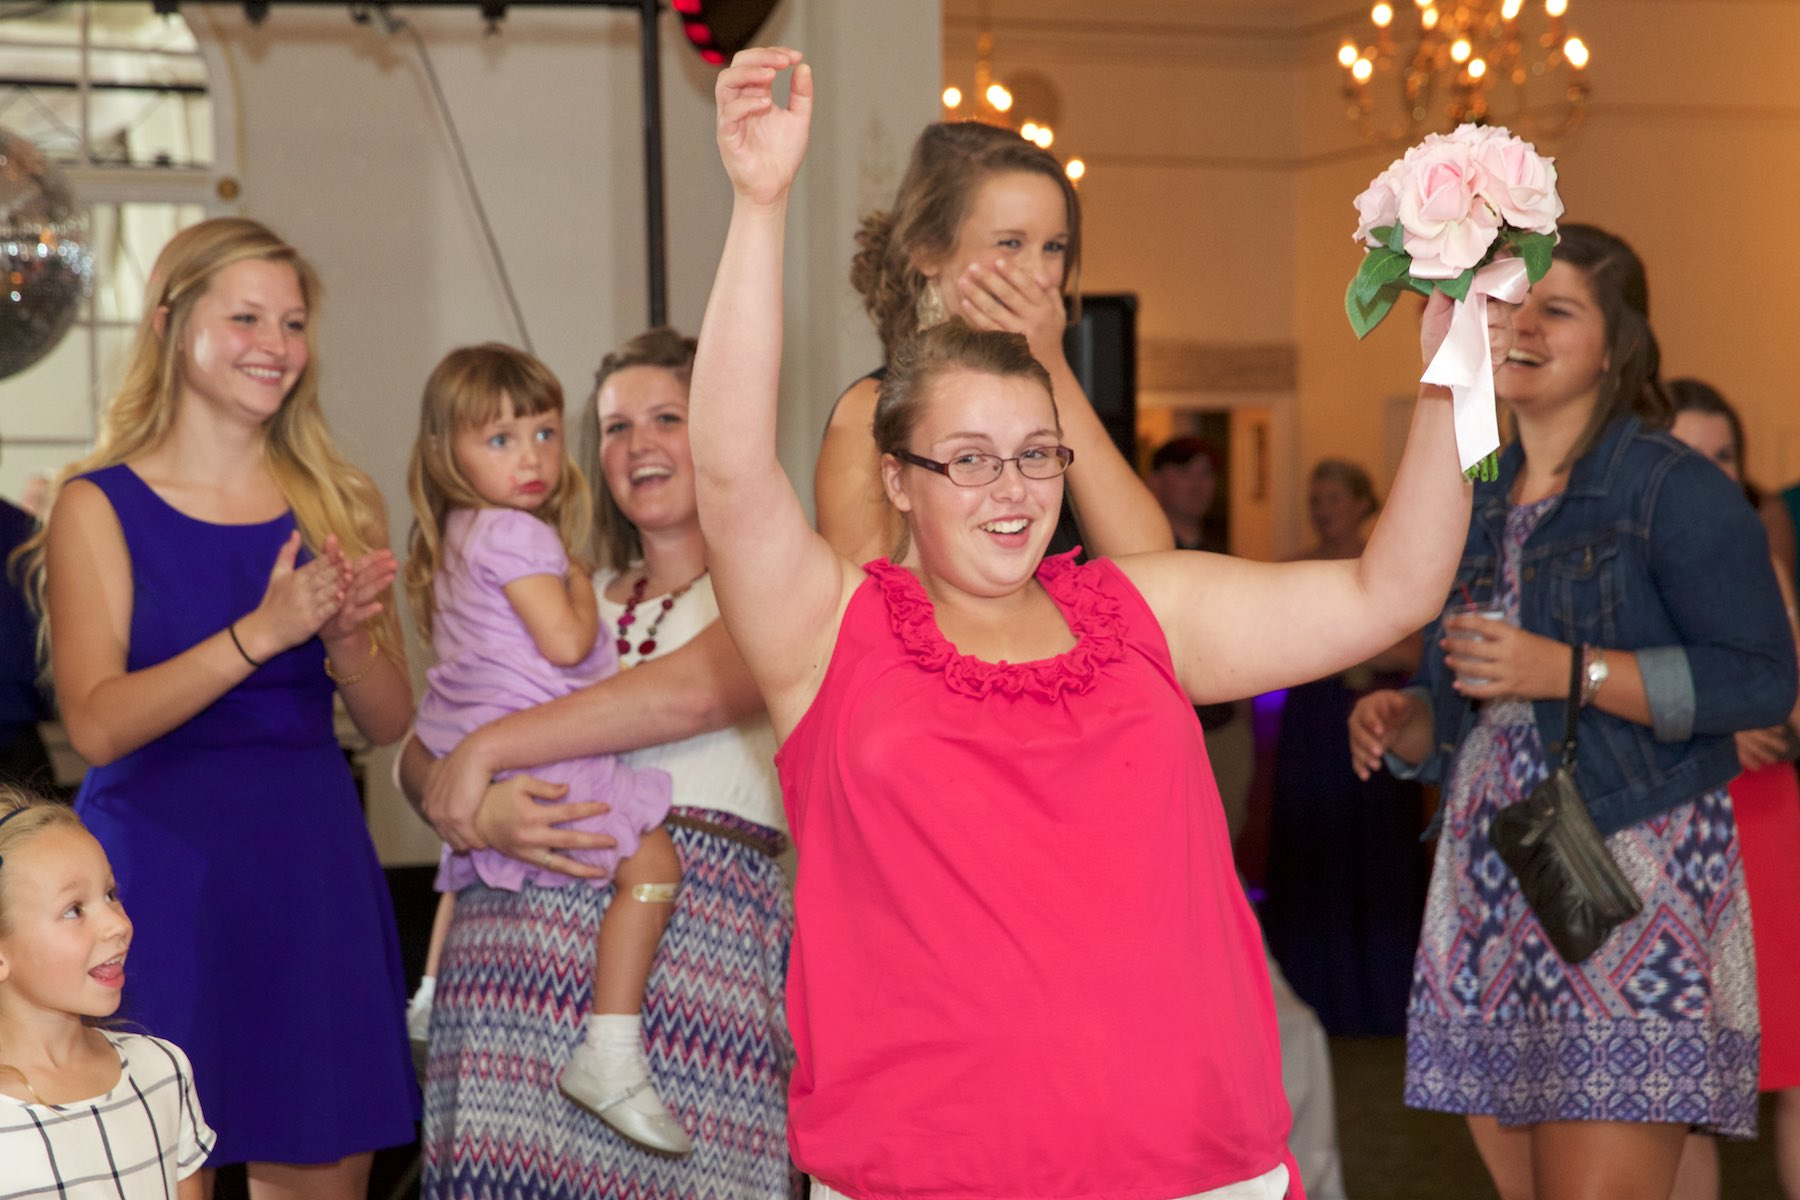 Catching the bouquet, bouquet toss, wedding reception at Hamilton's 110 North East, Jacksonville, Illinois. Wedding photography by Steve & Tiffany Warmowski.